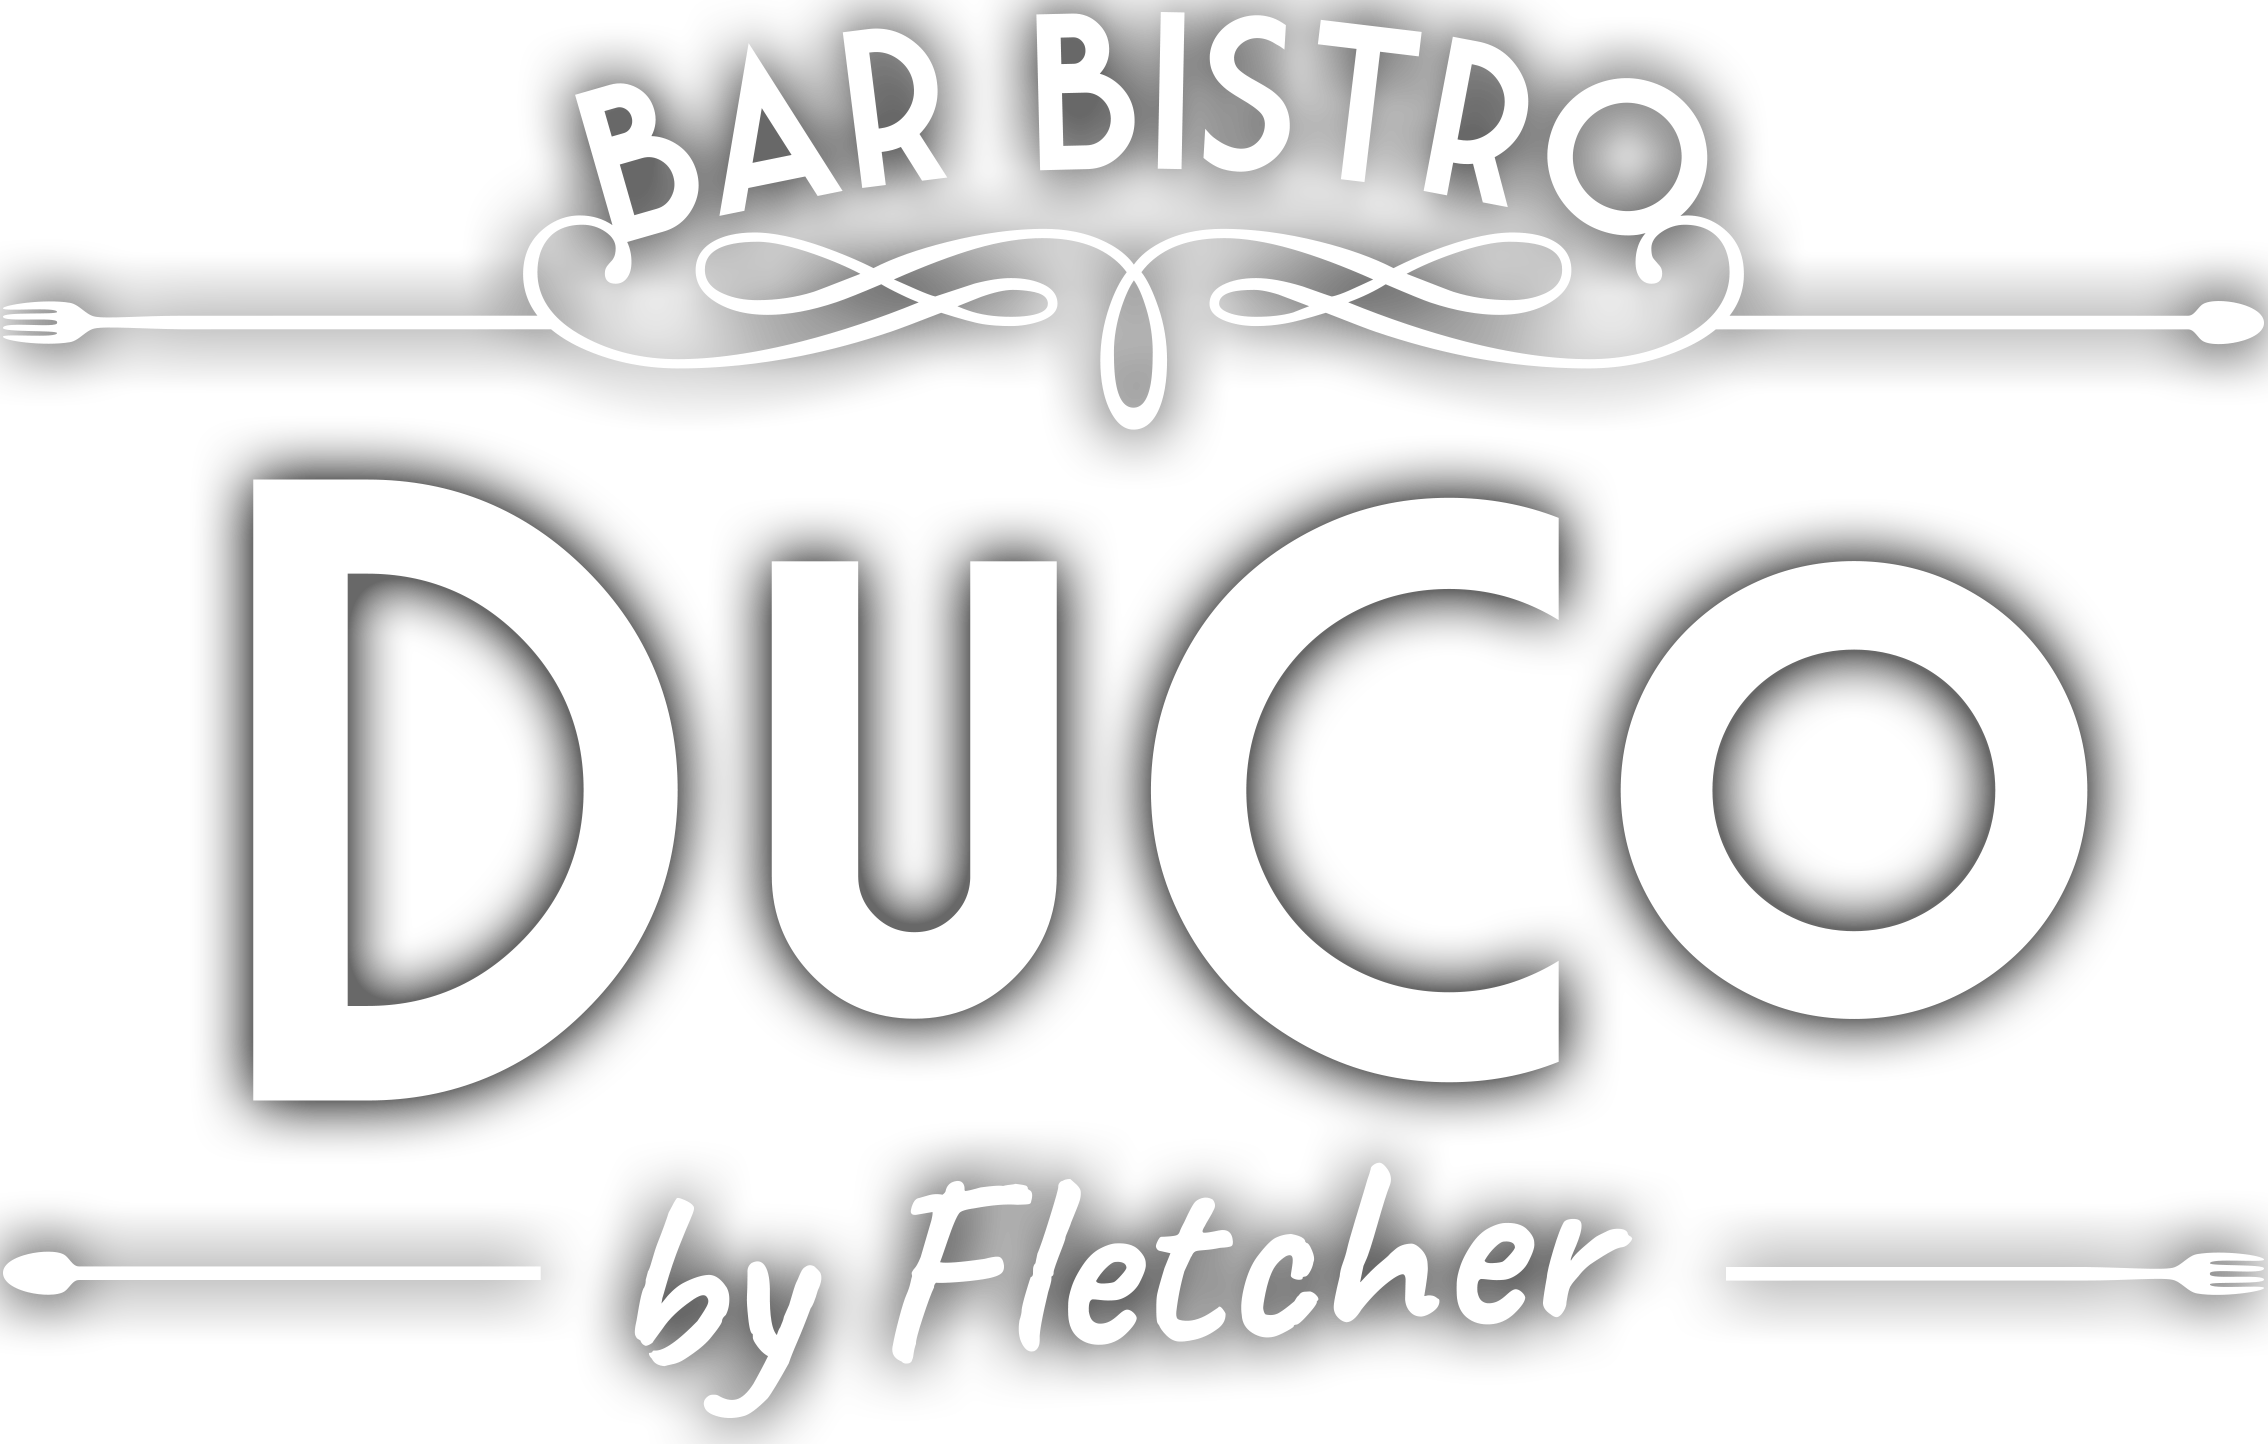 Bar Bistro Duco by Fletcher logo